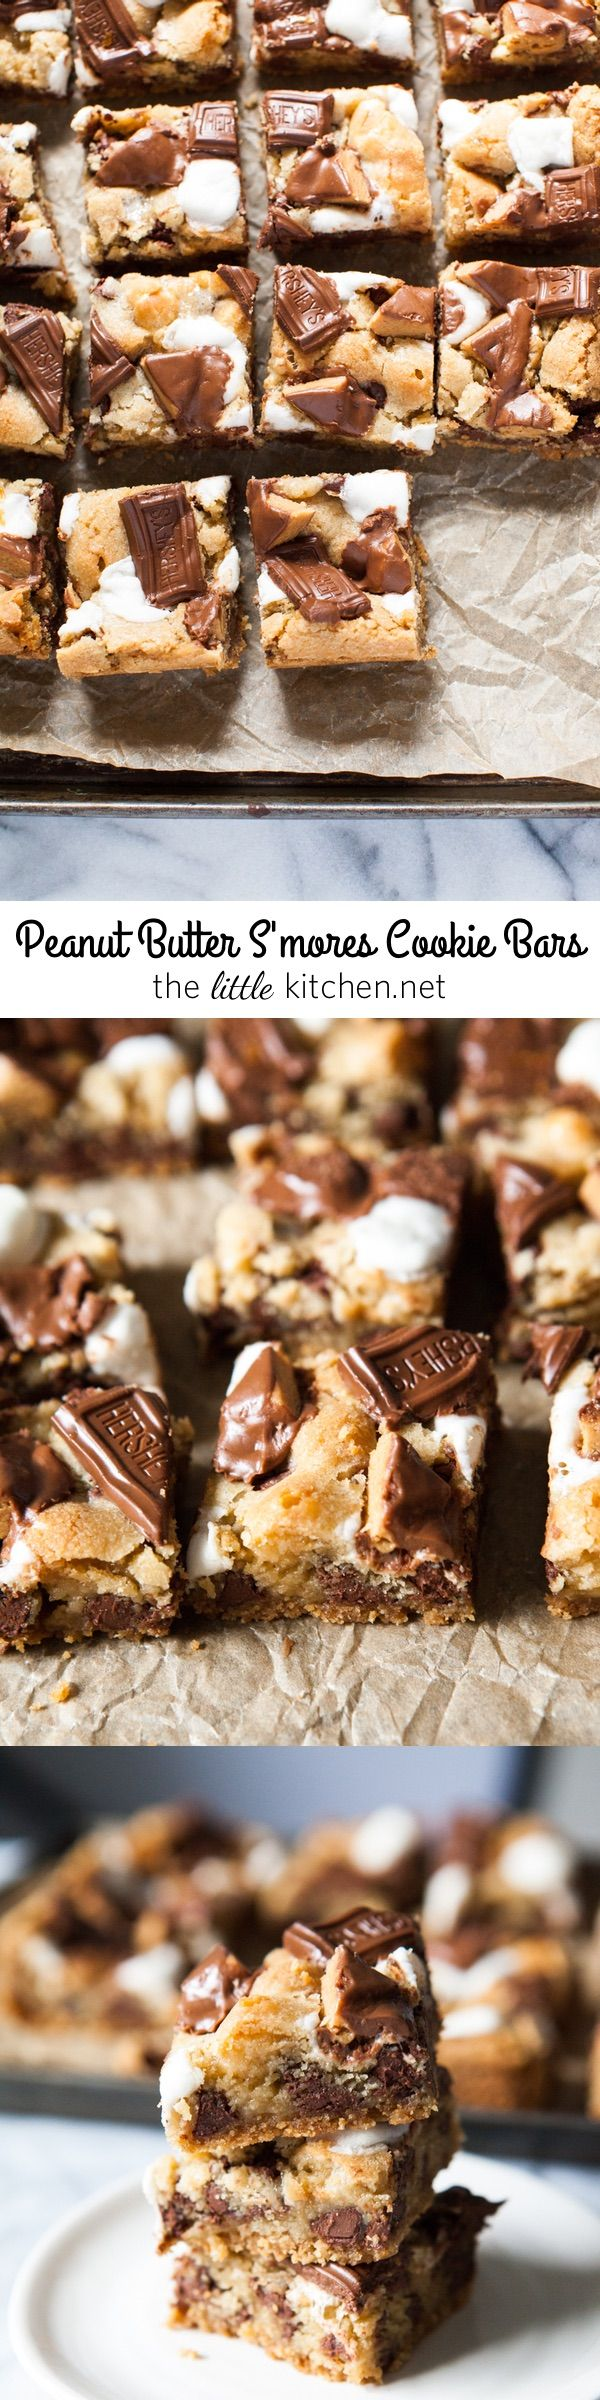 Peanut Butter S'mores Cookie Bars from thelittlekitchen.net